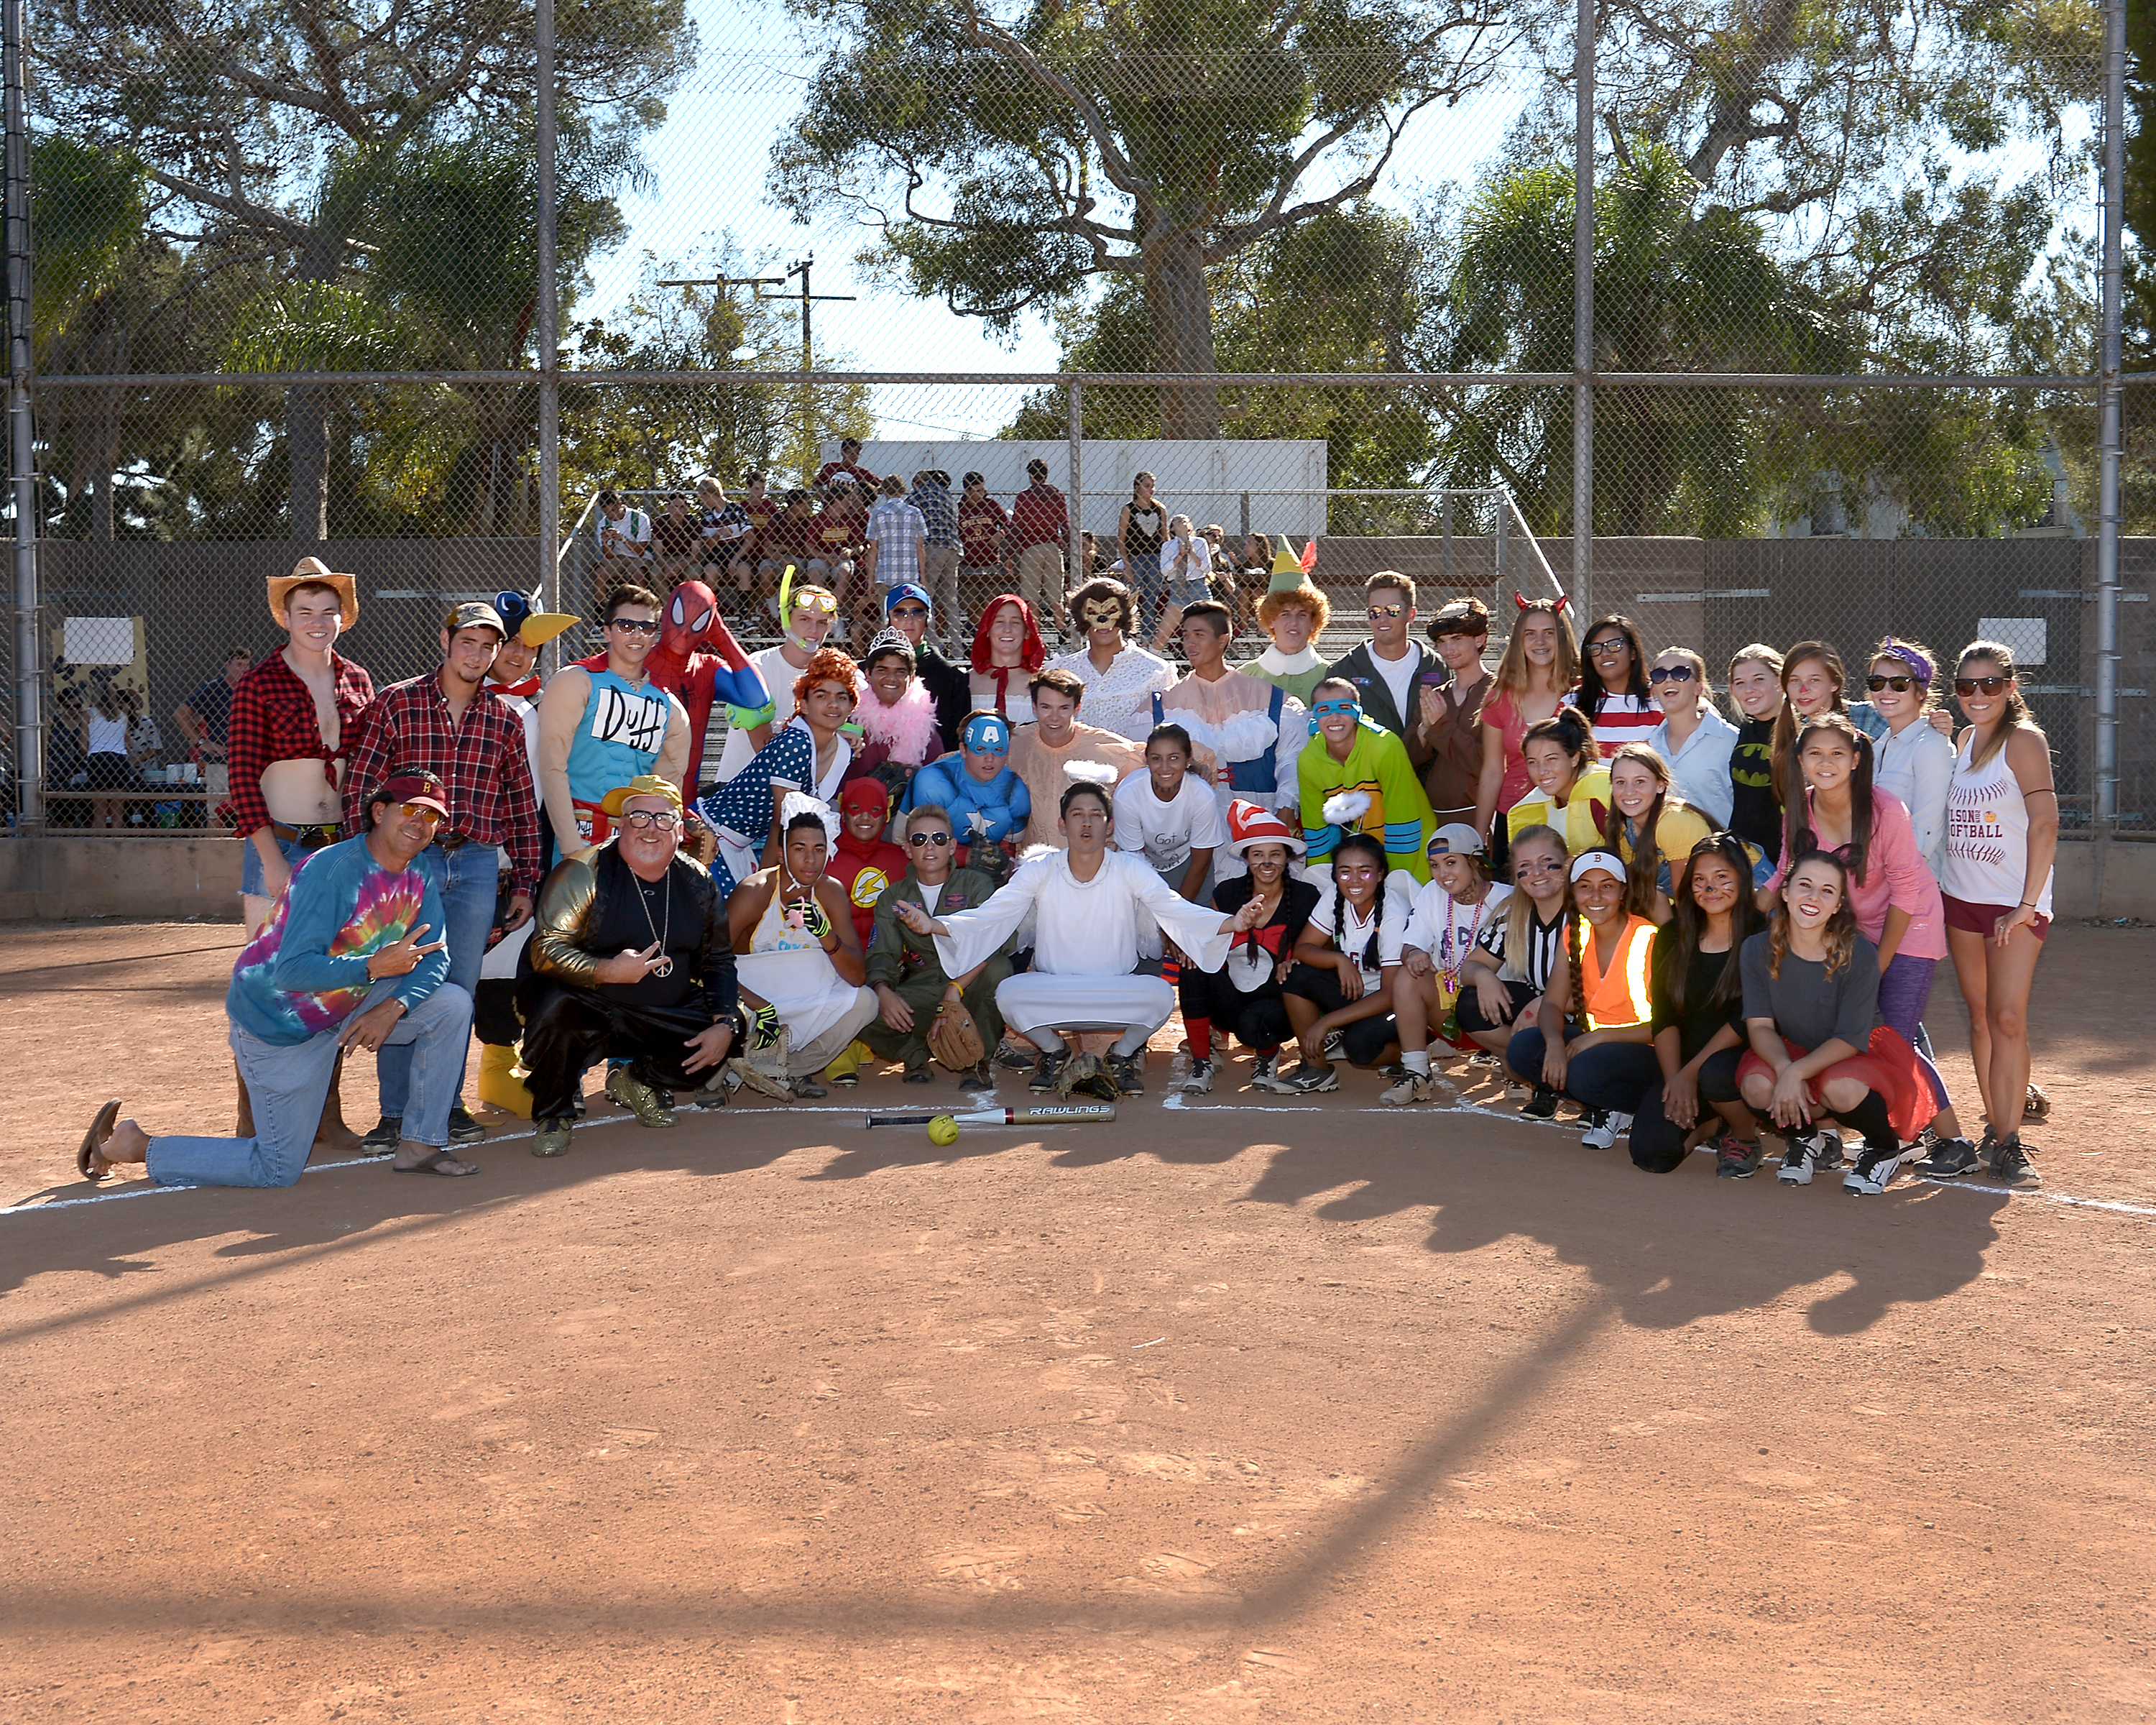 1st Annual Wilson Softball vs Baseball Game